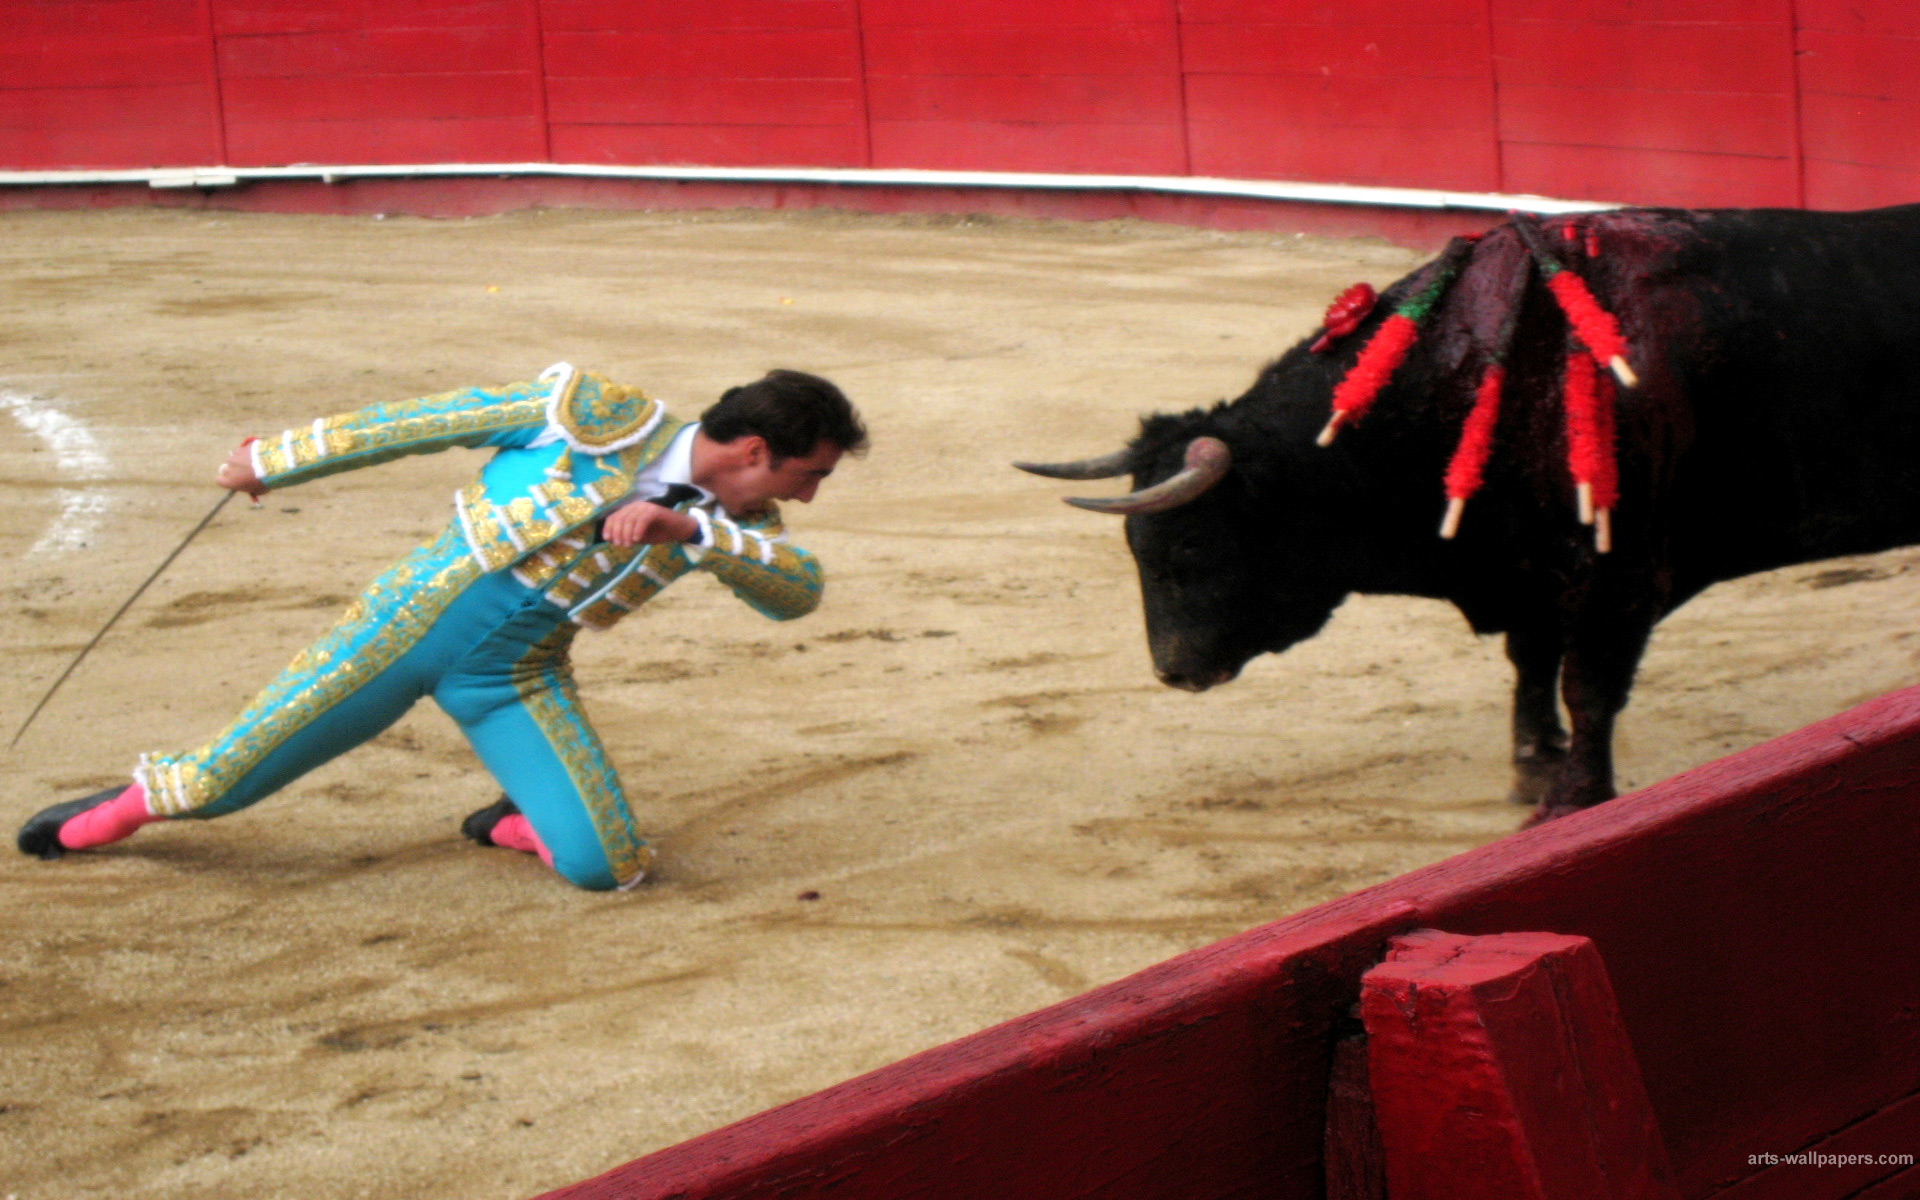 Bull Wallpapers Group With 61 Items: Bull Fighting Wallpaper